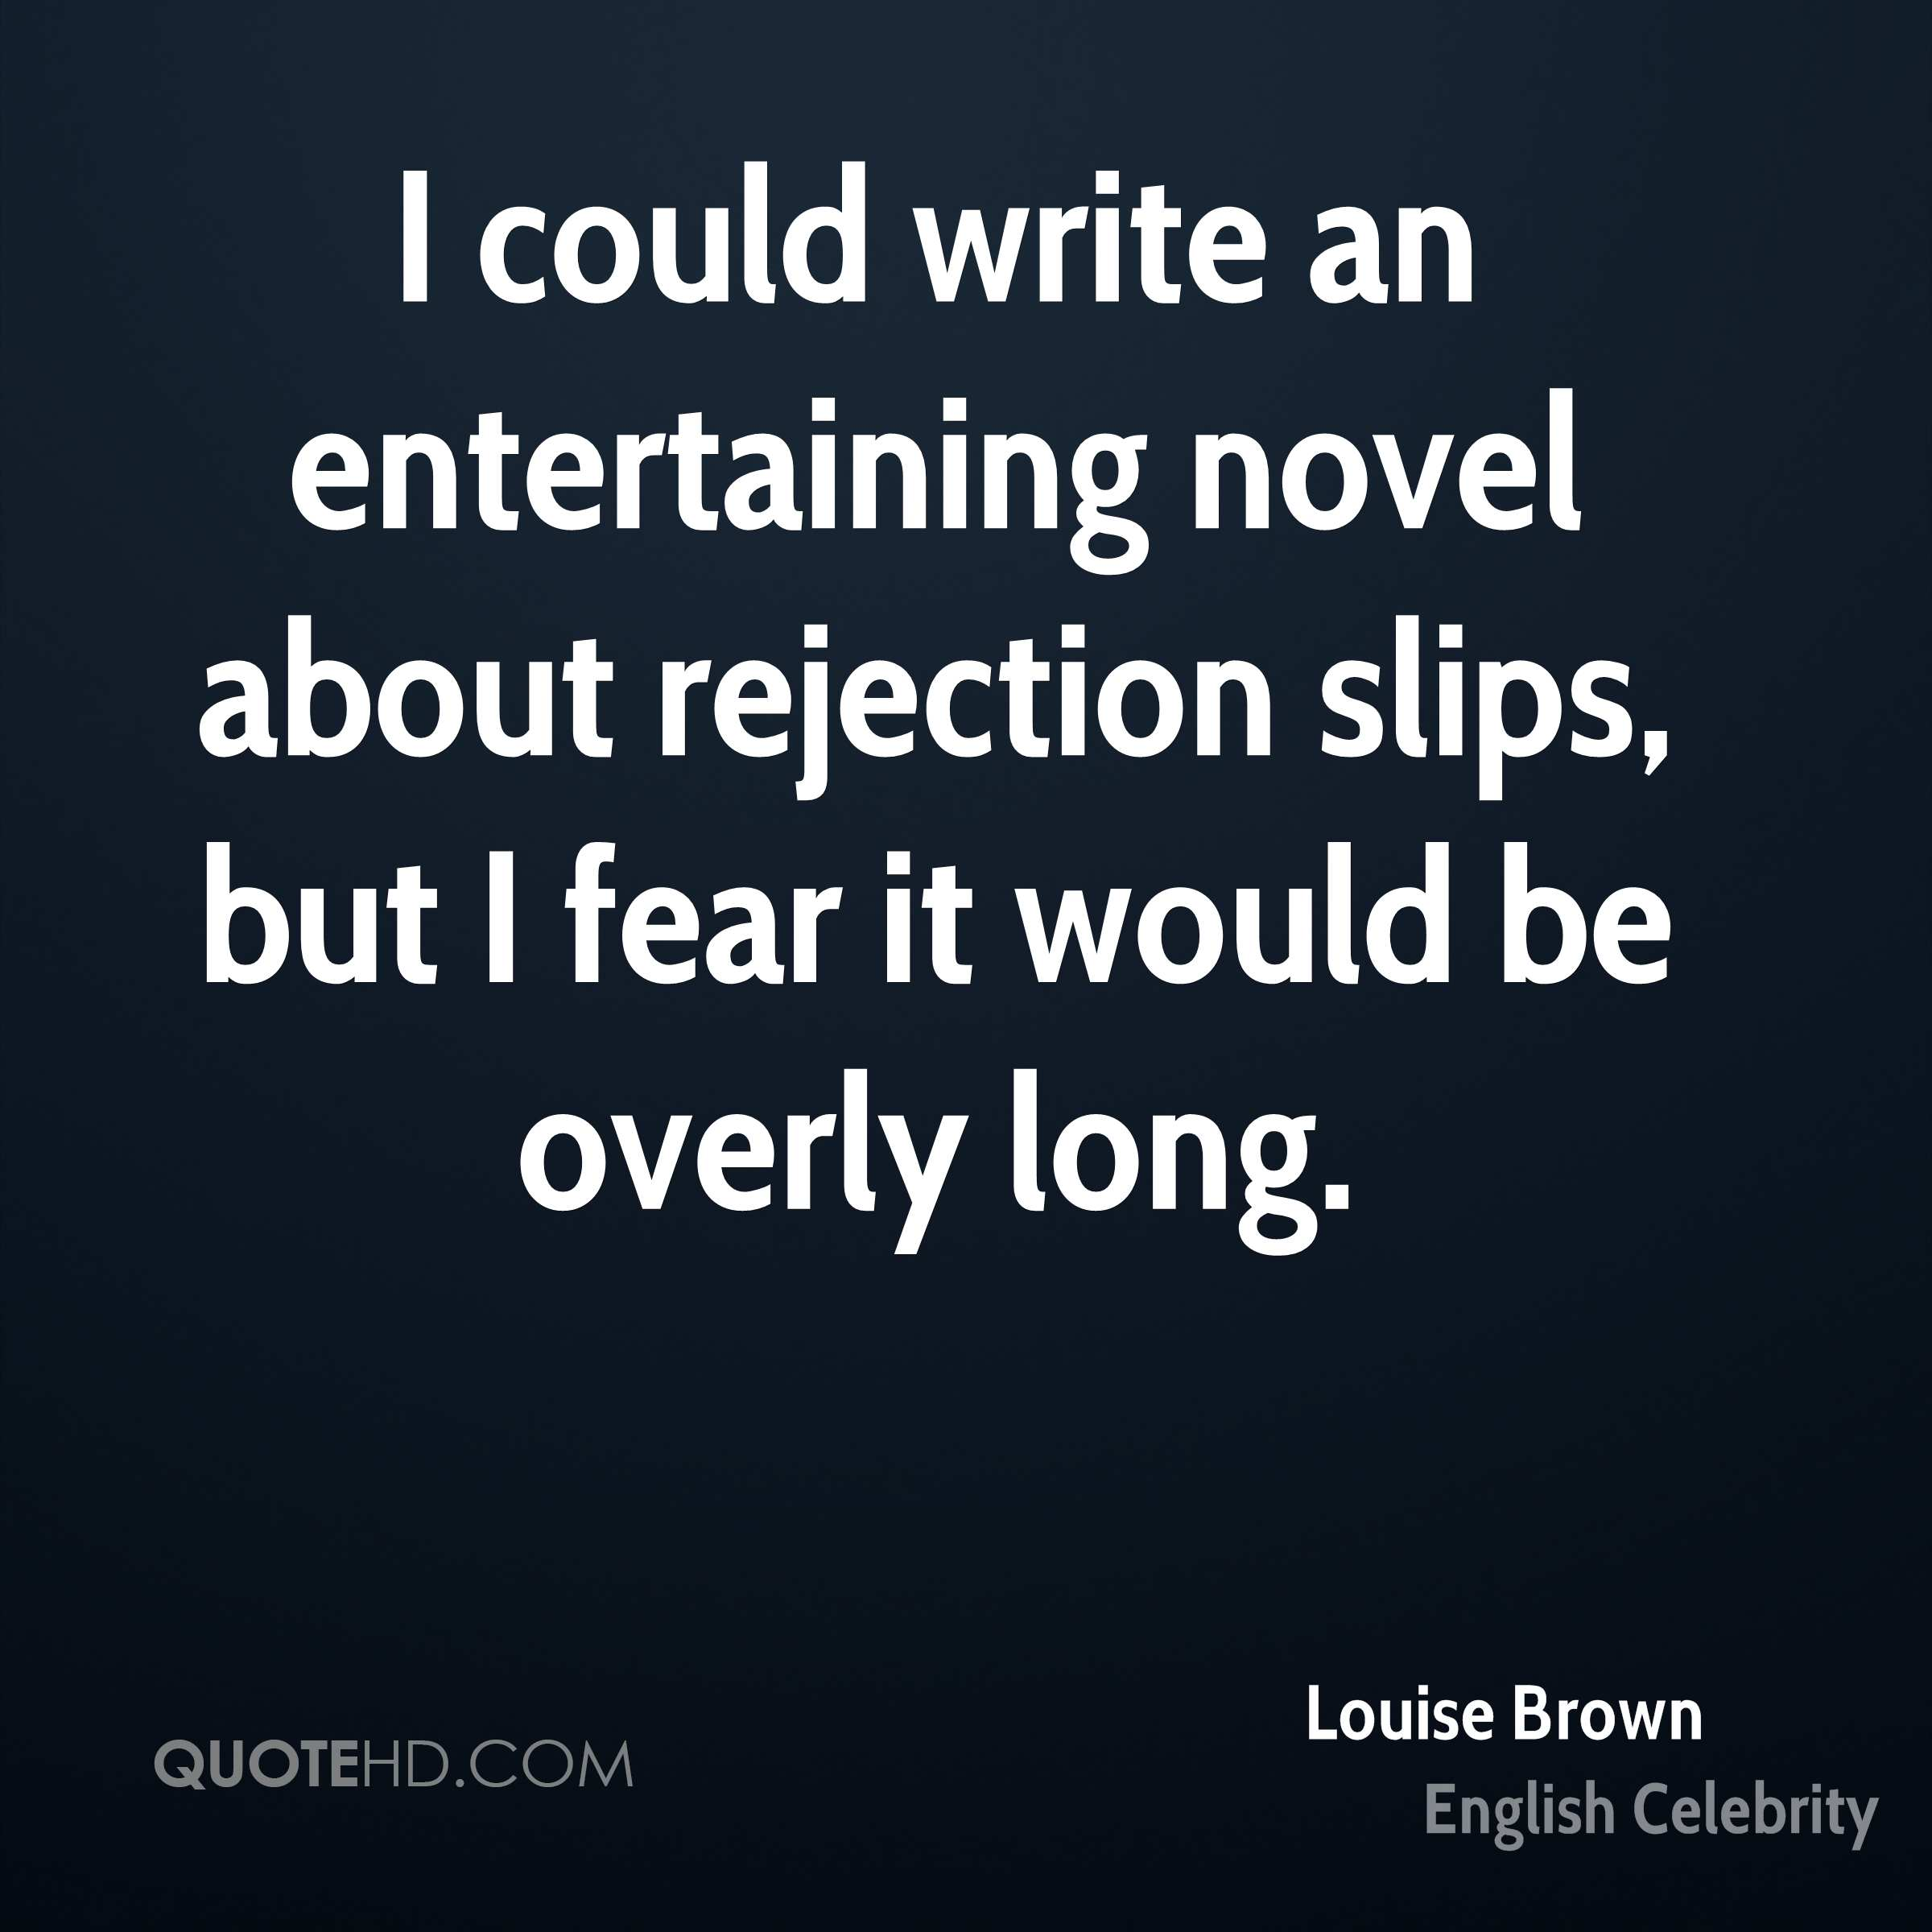 I could write an entertaining novel about rejection slips, but I fear it would be overly long.